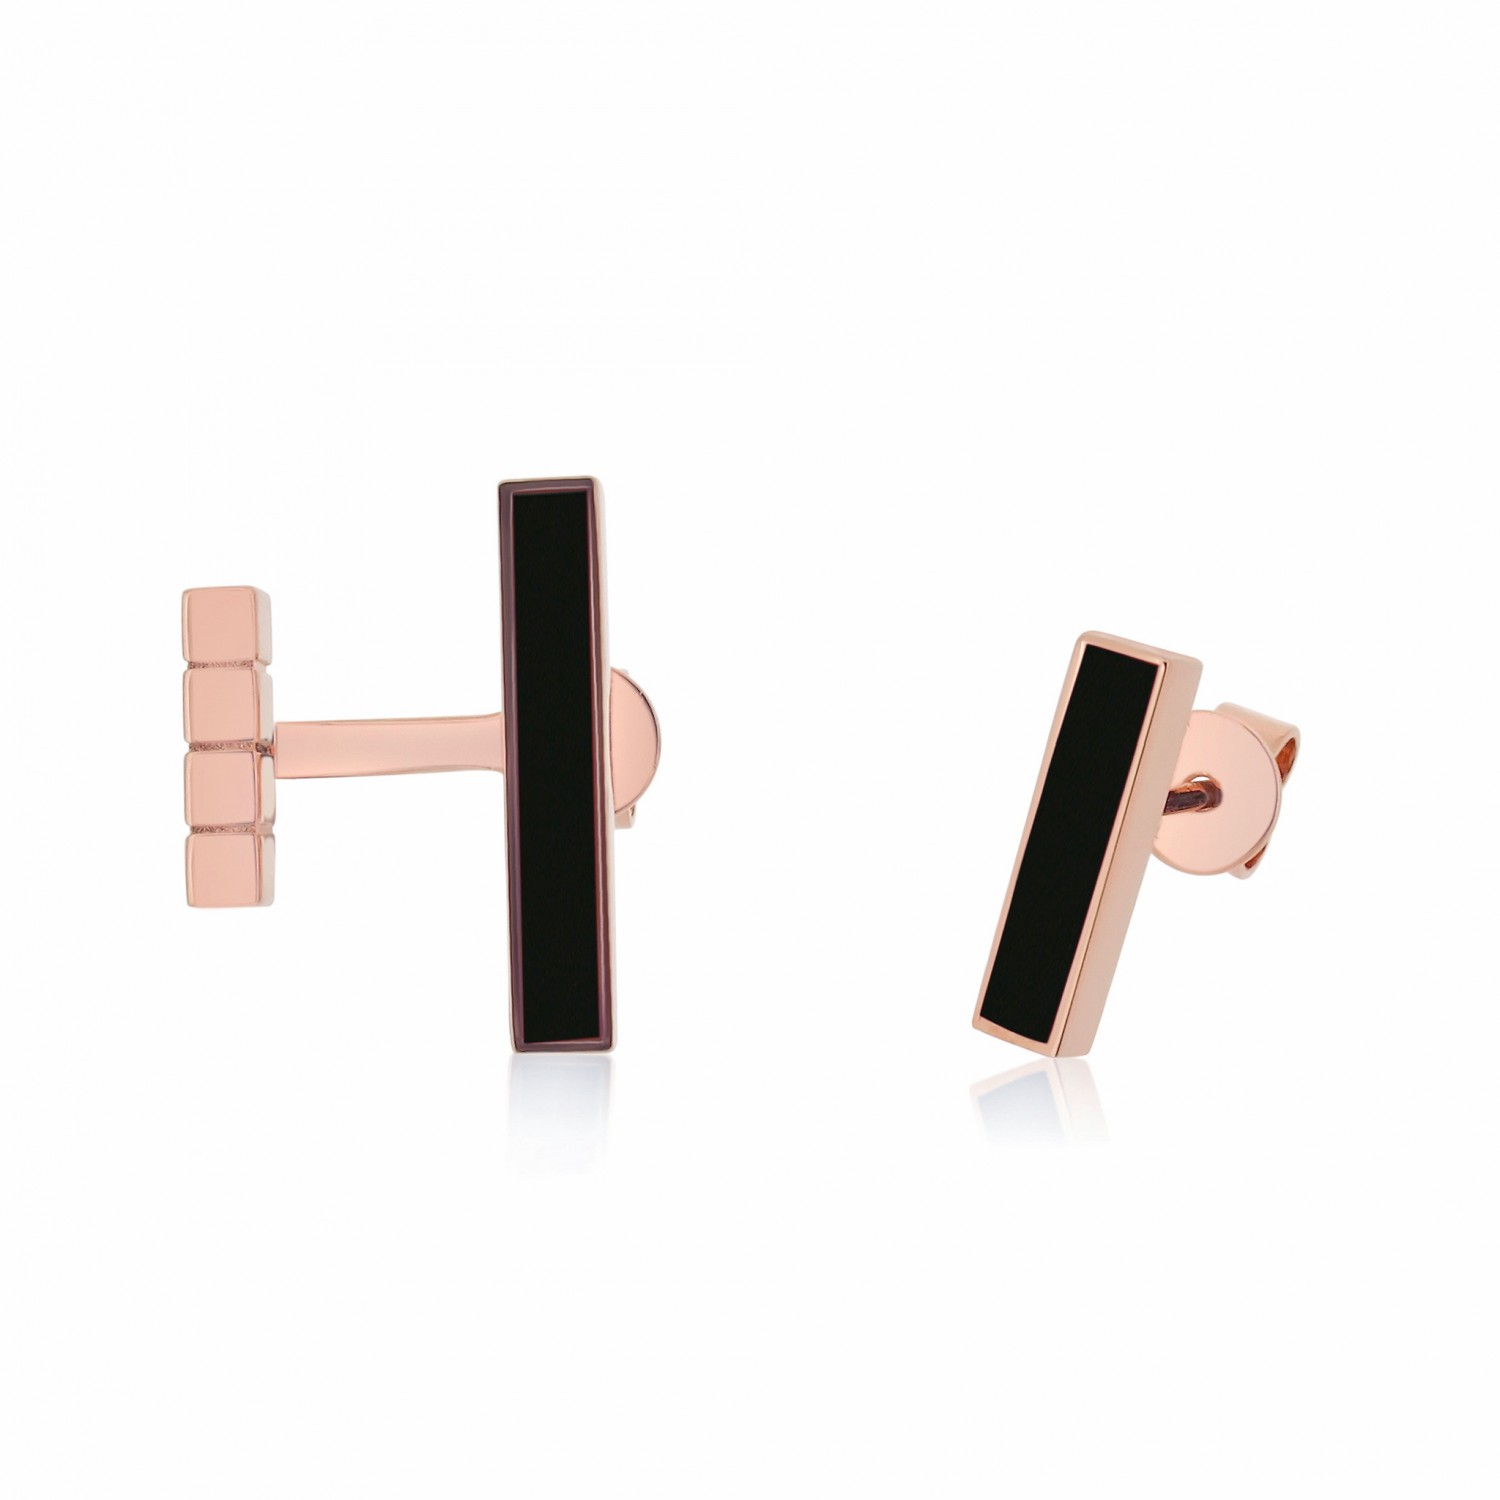 Ornate Asymmetrical Bar Onyx Earrings